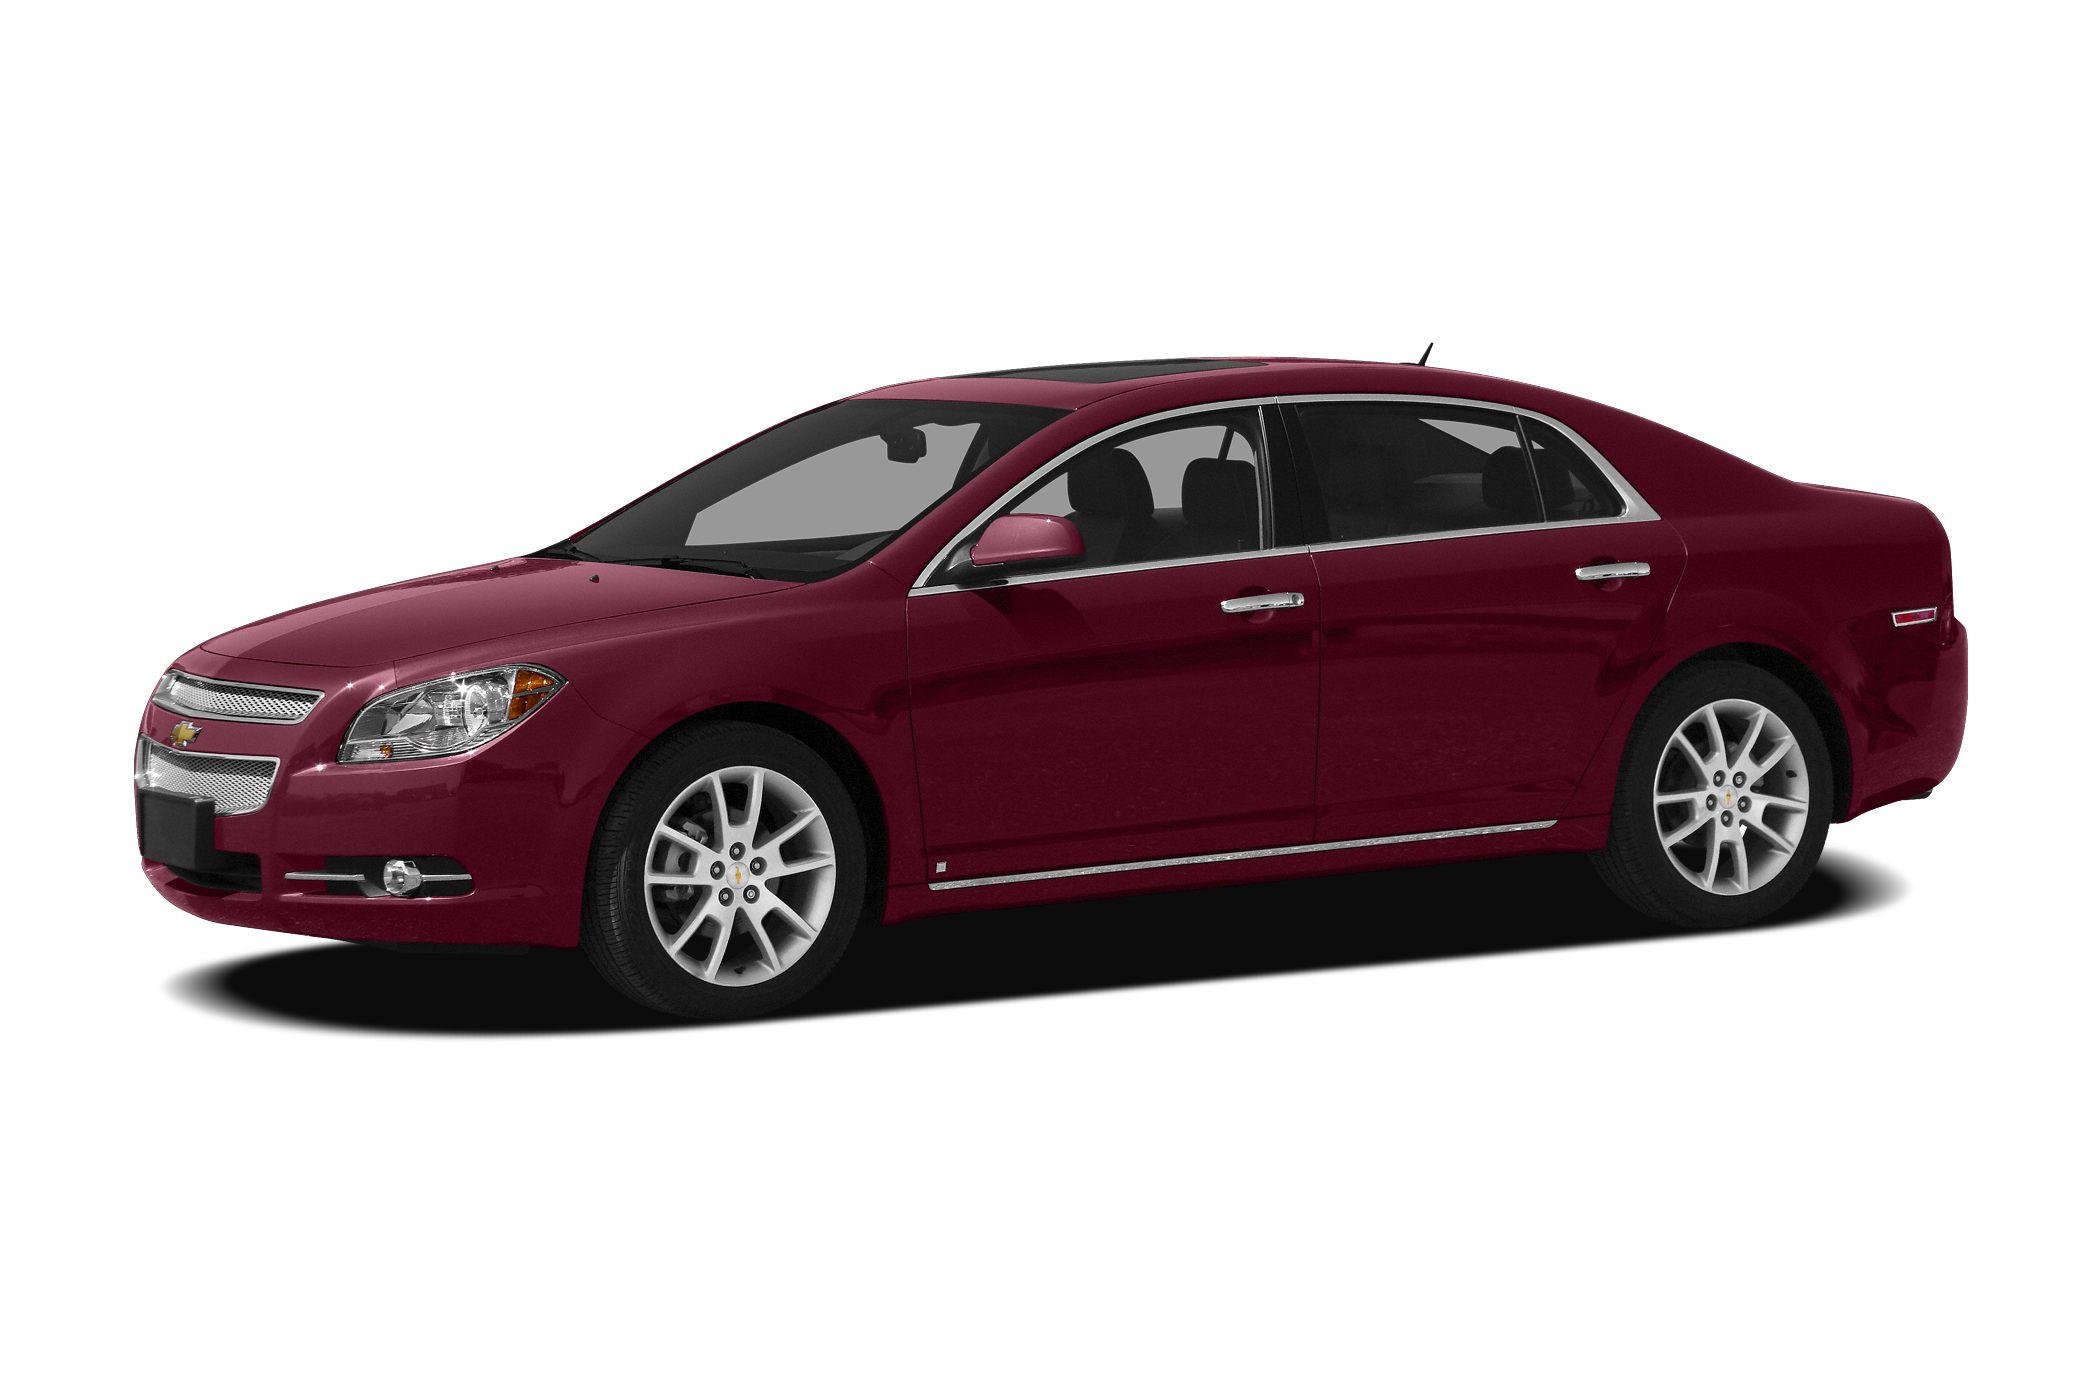 2009 Chevrolet Malibu LT Sedan for sale in Depew for $0 with 73,081 miles